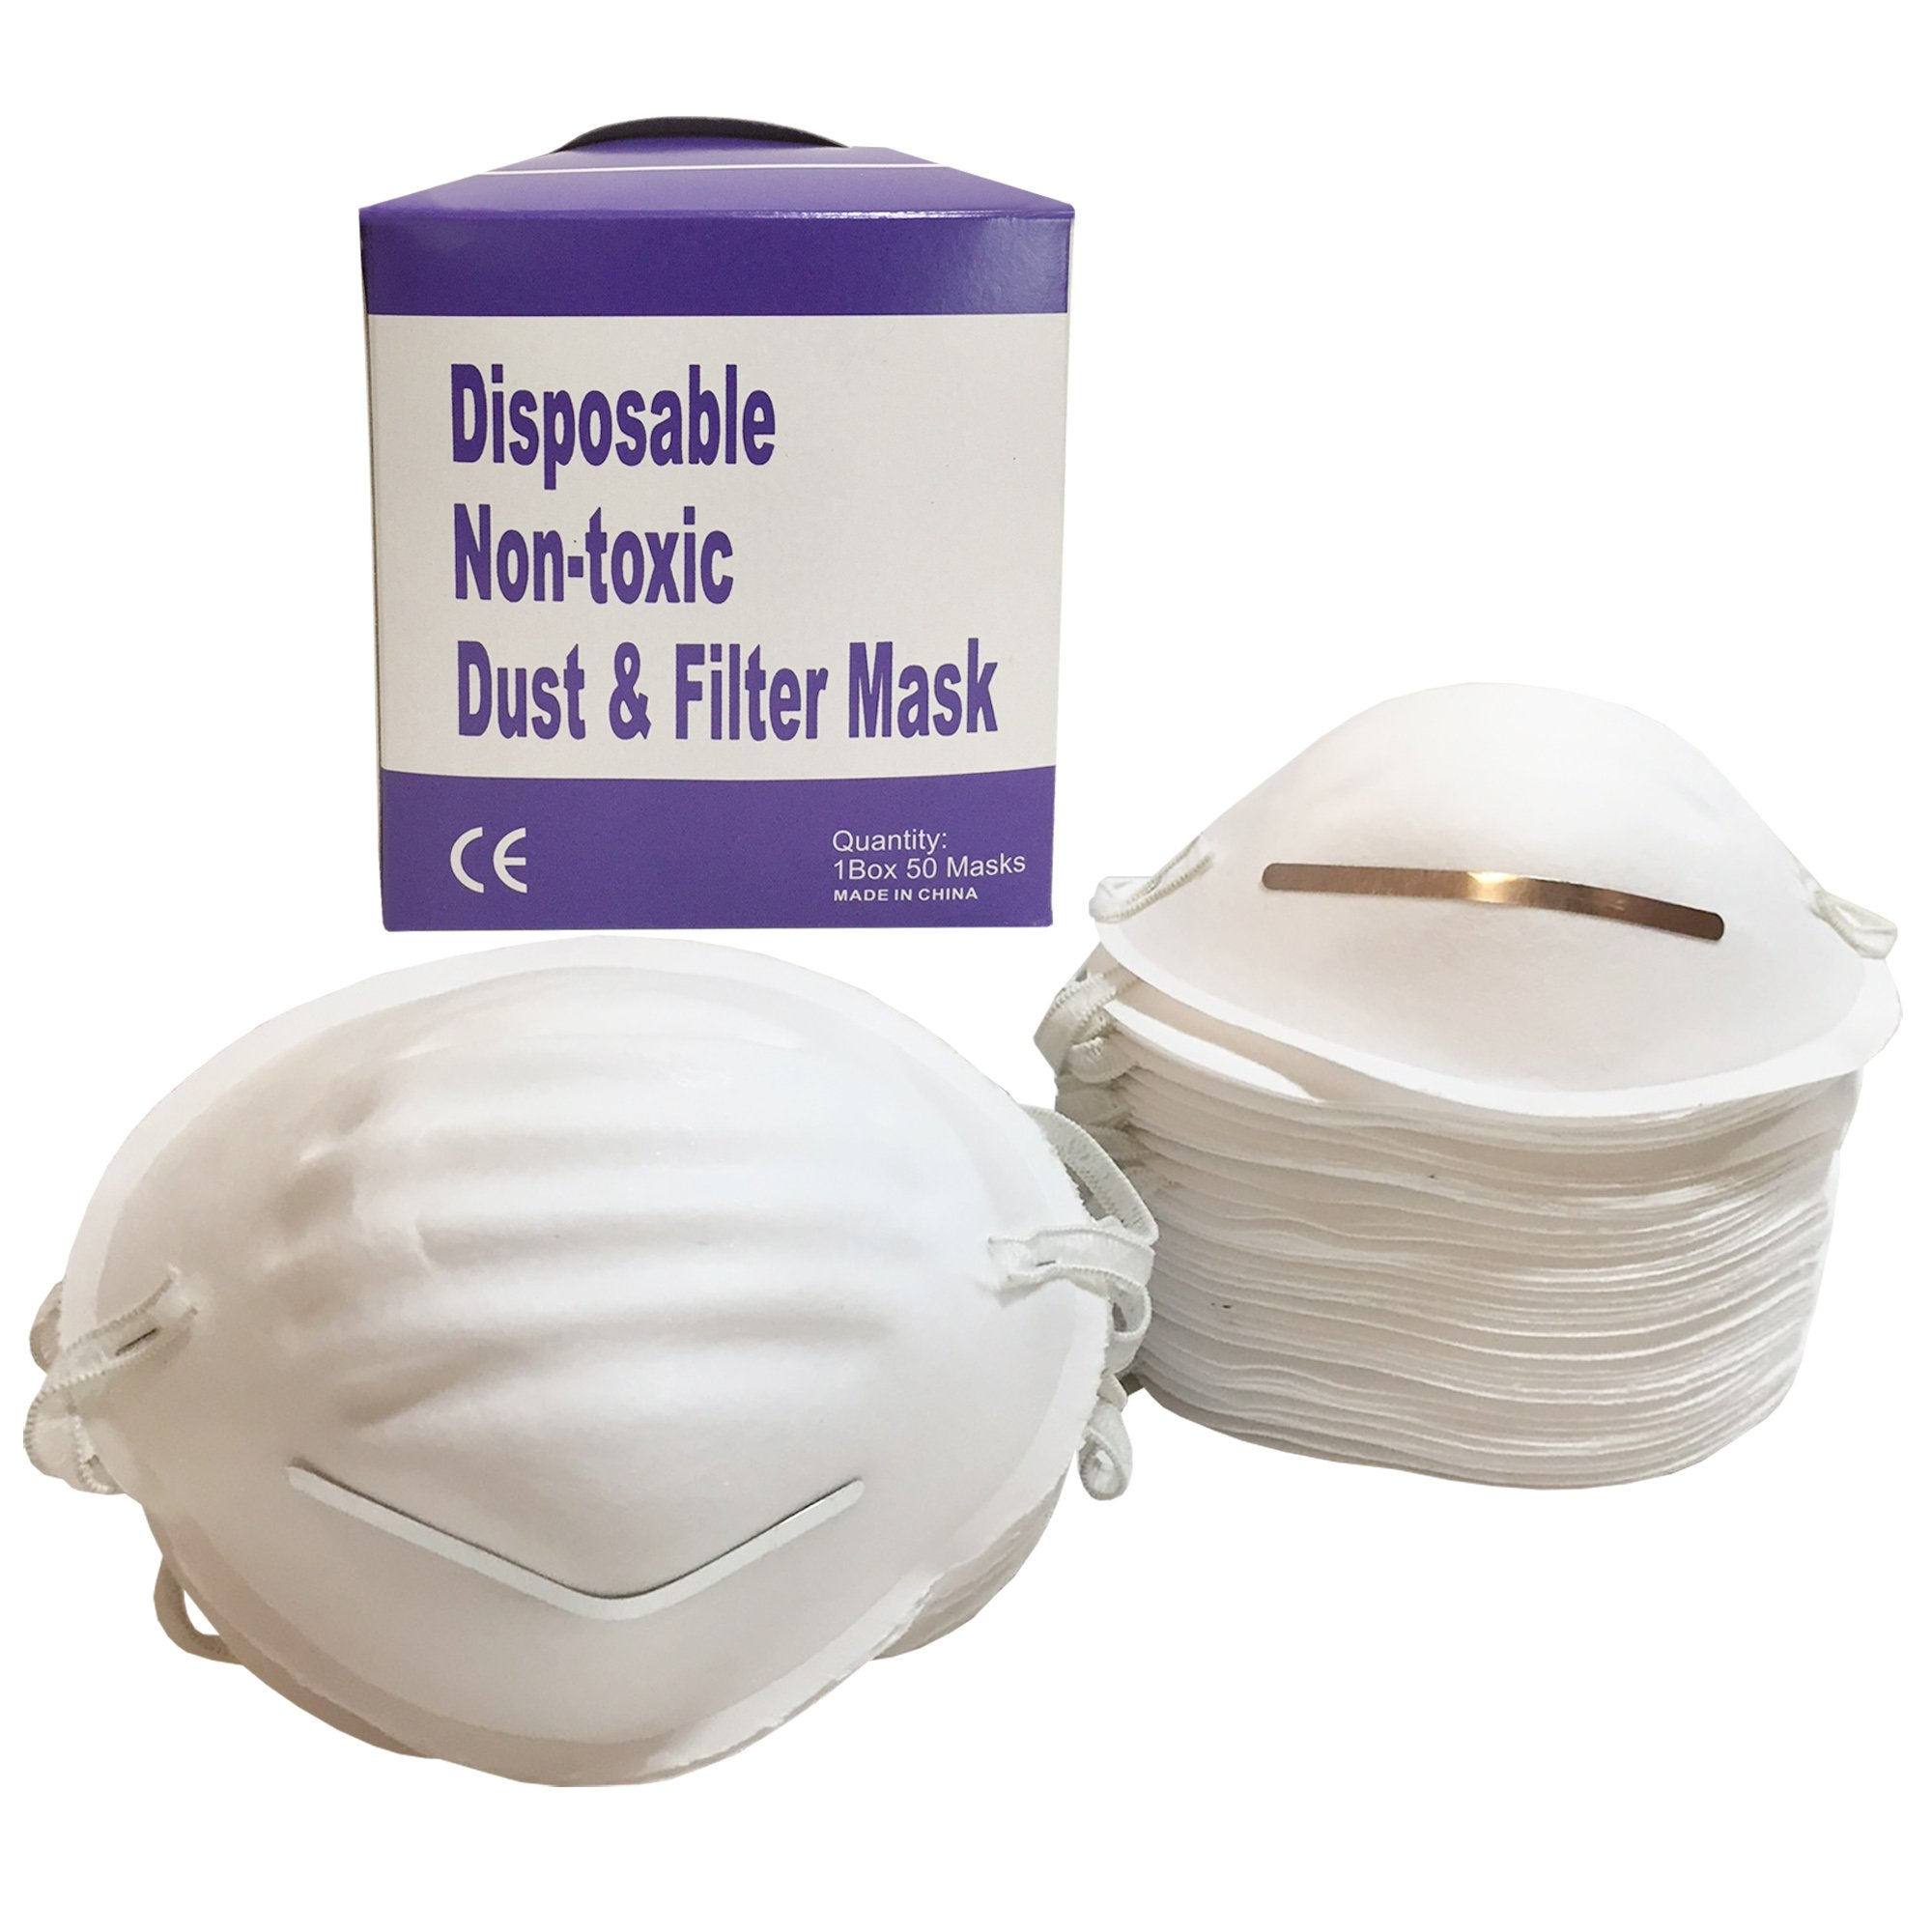 Mama Jo's Disposable Dust Masks - All Purpose Filter Painting Mask for Work, Gardening, Home and Outdoor Projects - Universal Fit (50 - Anti Dust Mask)